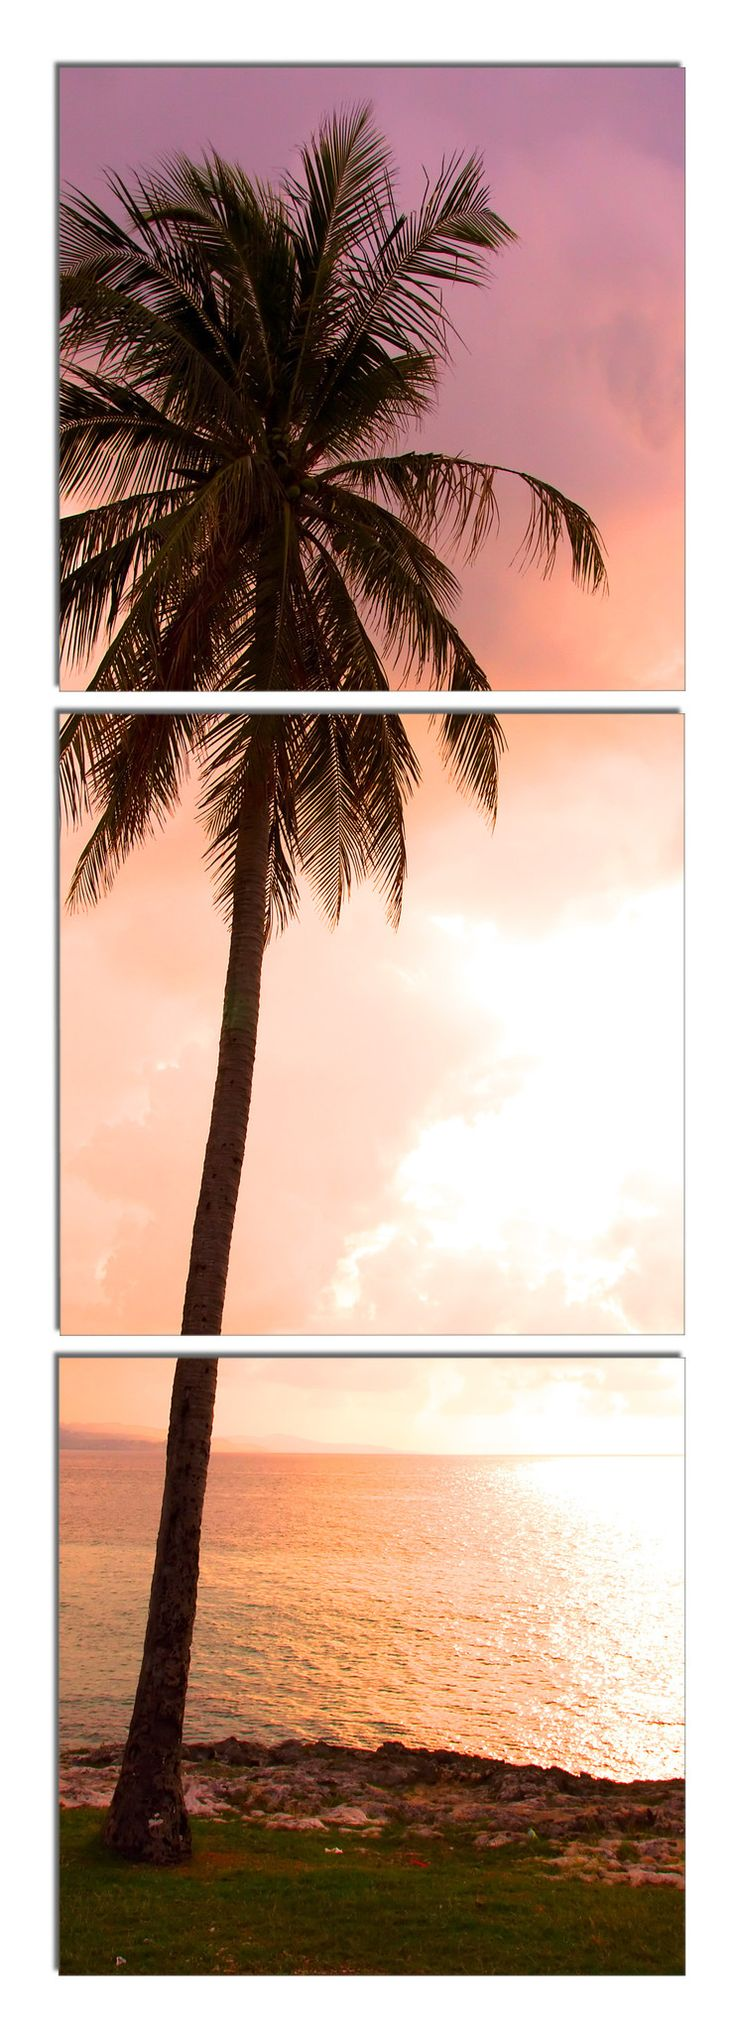 17 Best images about Triptychs on Pinterest | Cove, Ocean sunset ... - Palm Sunshine Vinyl Wall Art - Set of 3 by Elementem Photography on